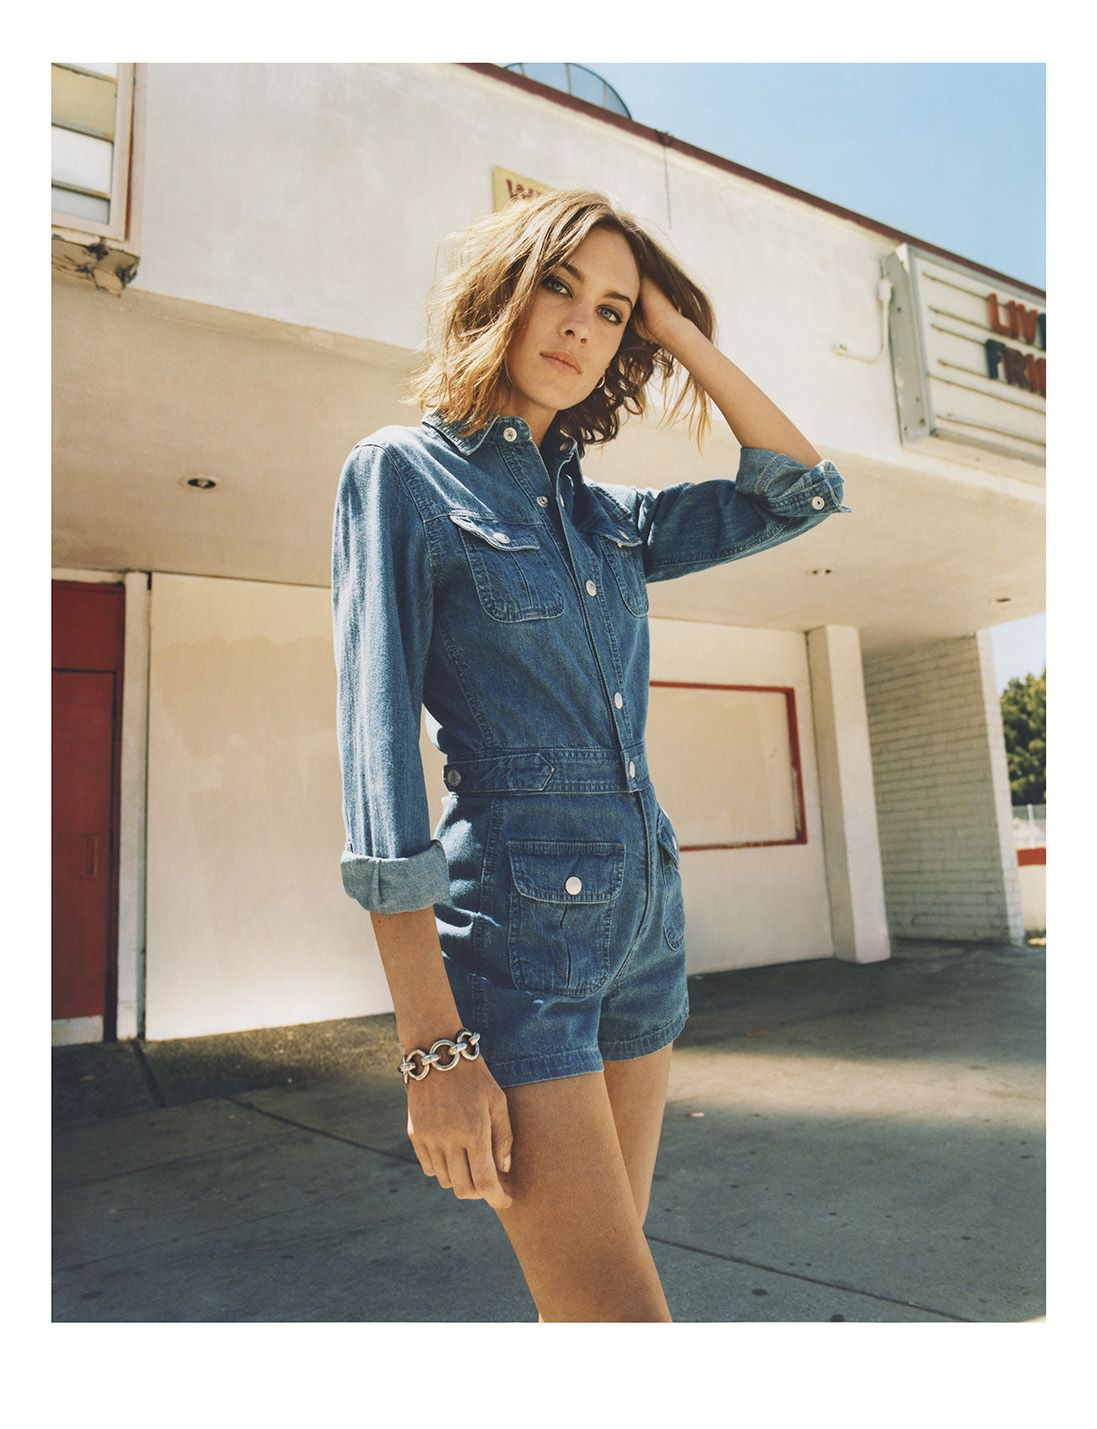 DUNGAREES - Pinafores Alexa Chung For Ag Jeans Outlet Cheap Prices Clearance Many Kinds Of Clearance Best Store To Get BL73eGLImx